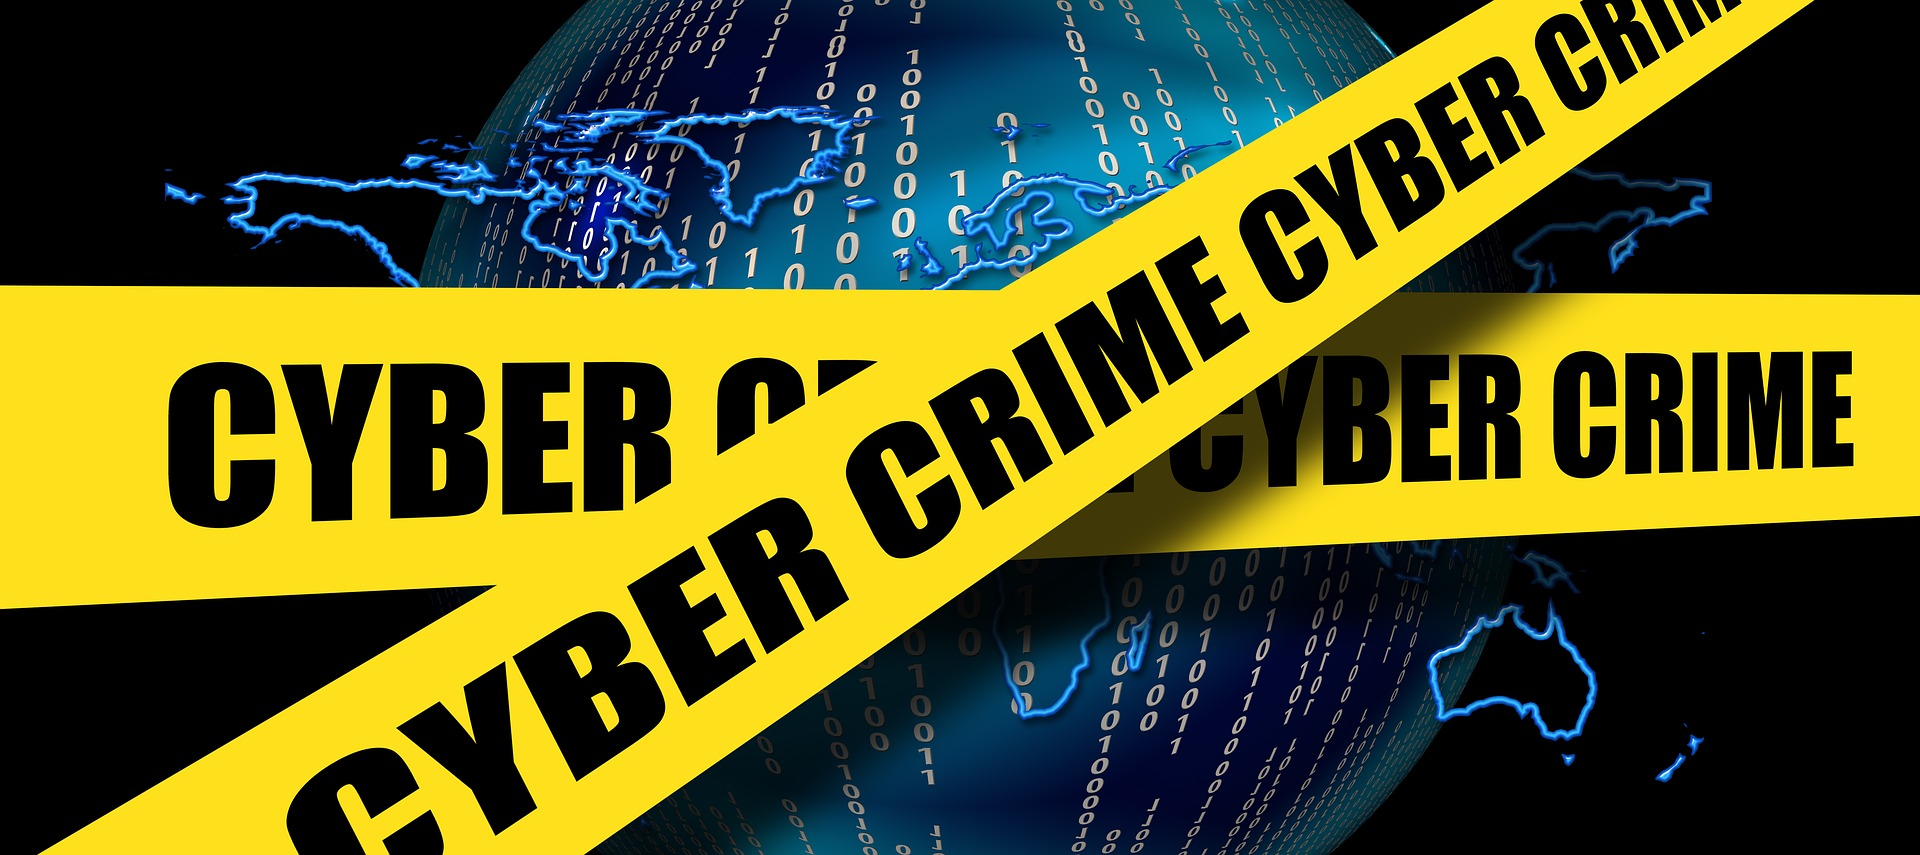 cybercrimes victimizes globally (CC0 Creative Commons)